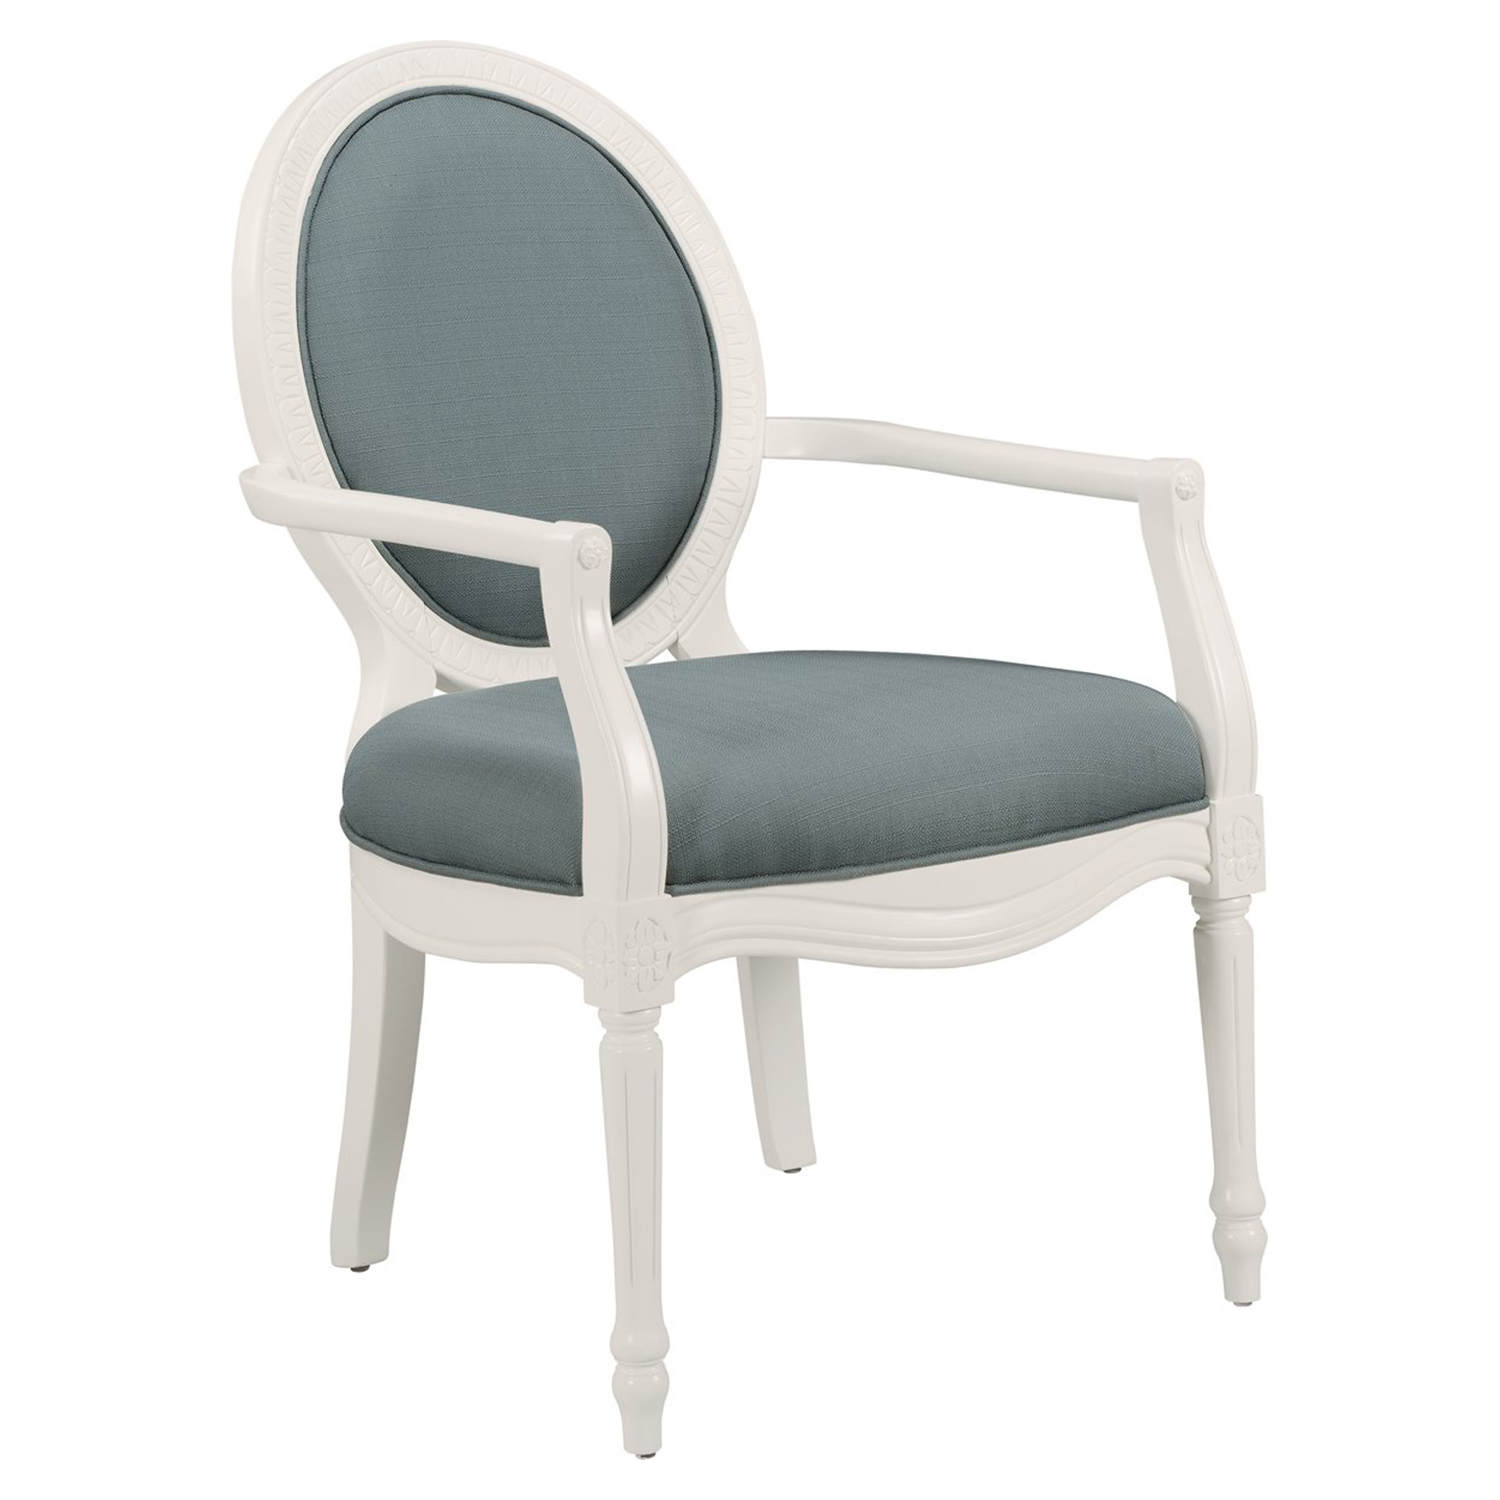 Madison Accent Chair - Rain, White